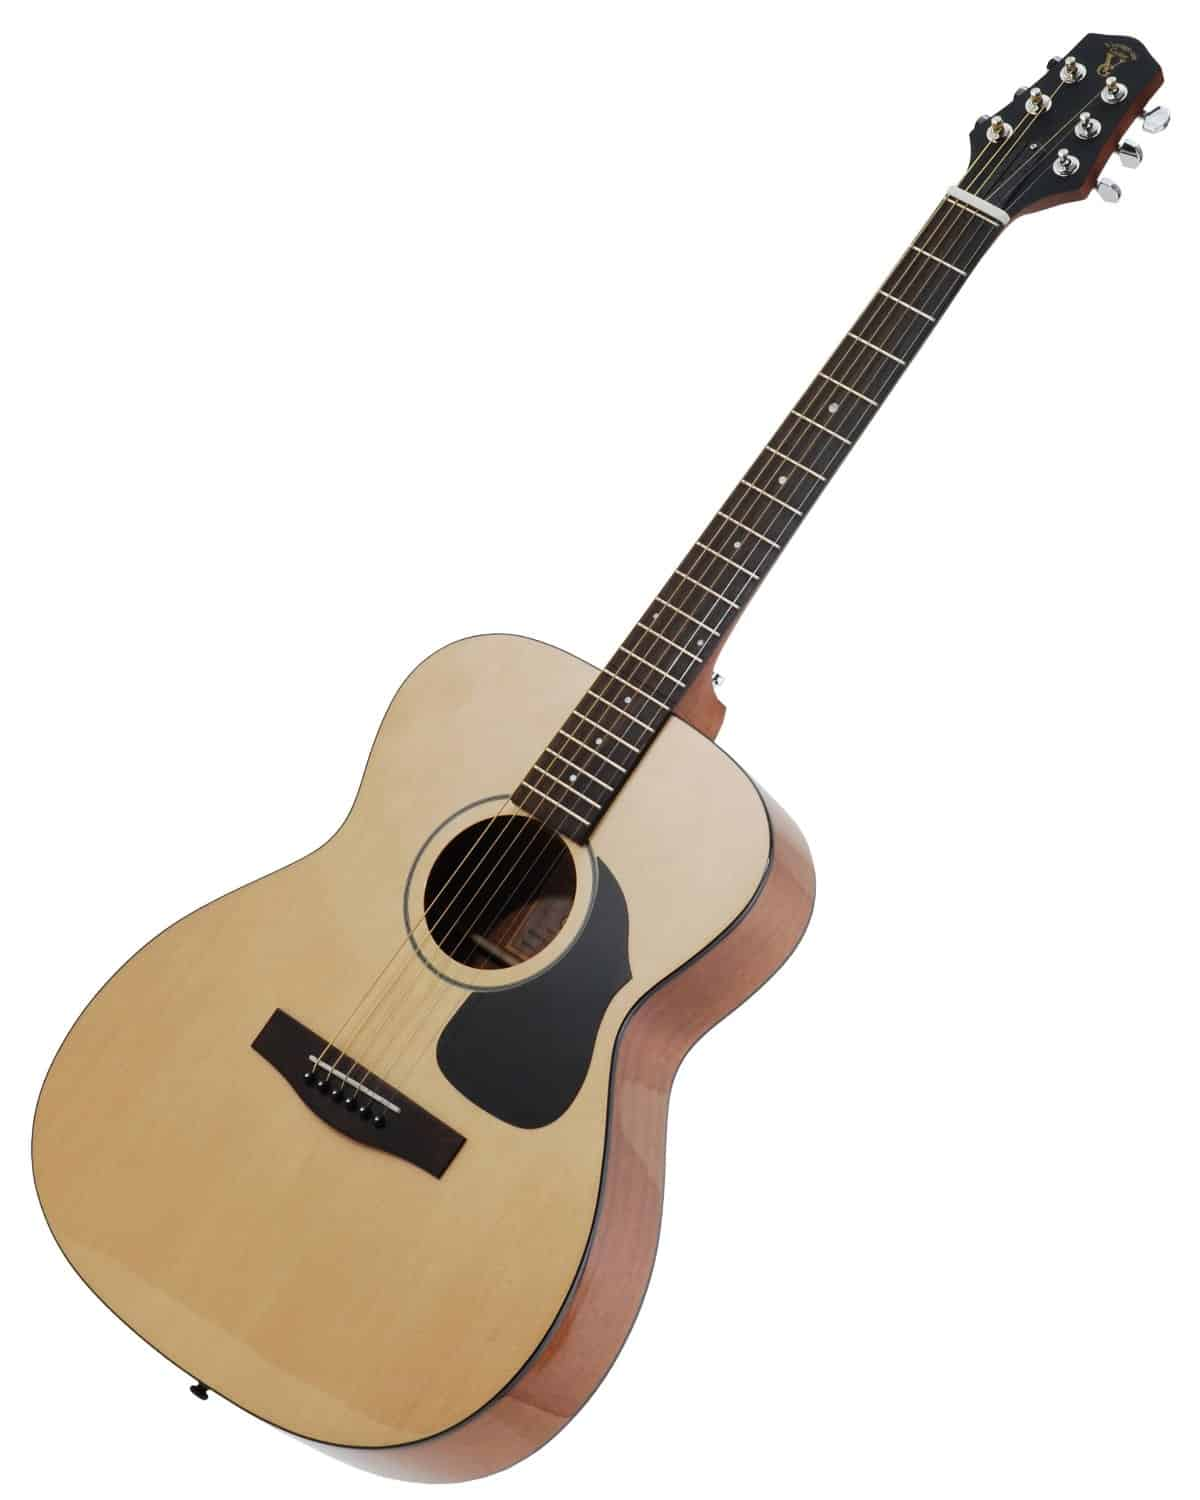 Voyage-Air Transit Series VAOM-02 Folding Orchestra Model Acoustic Guitar Unfolded